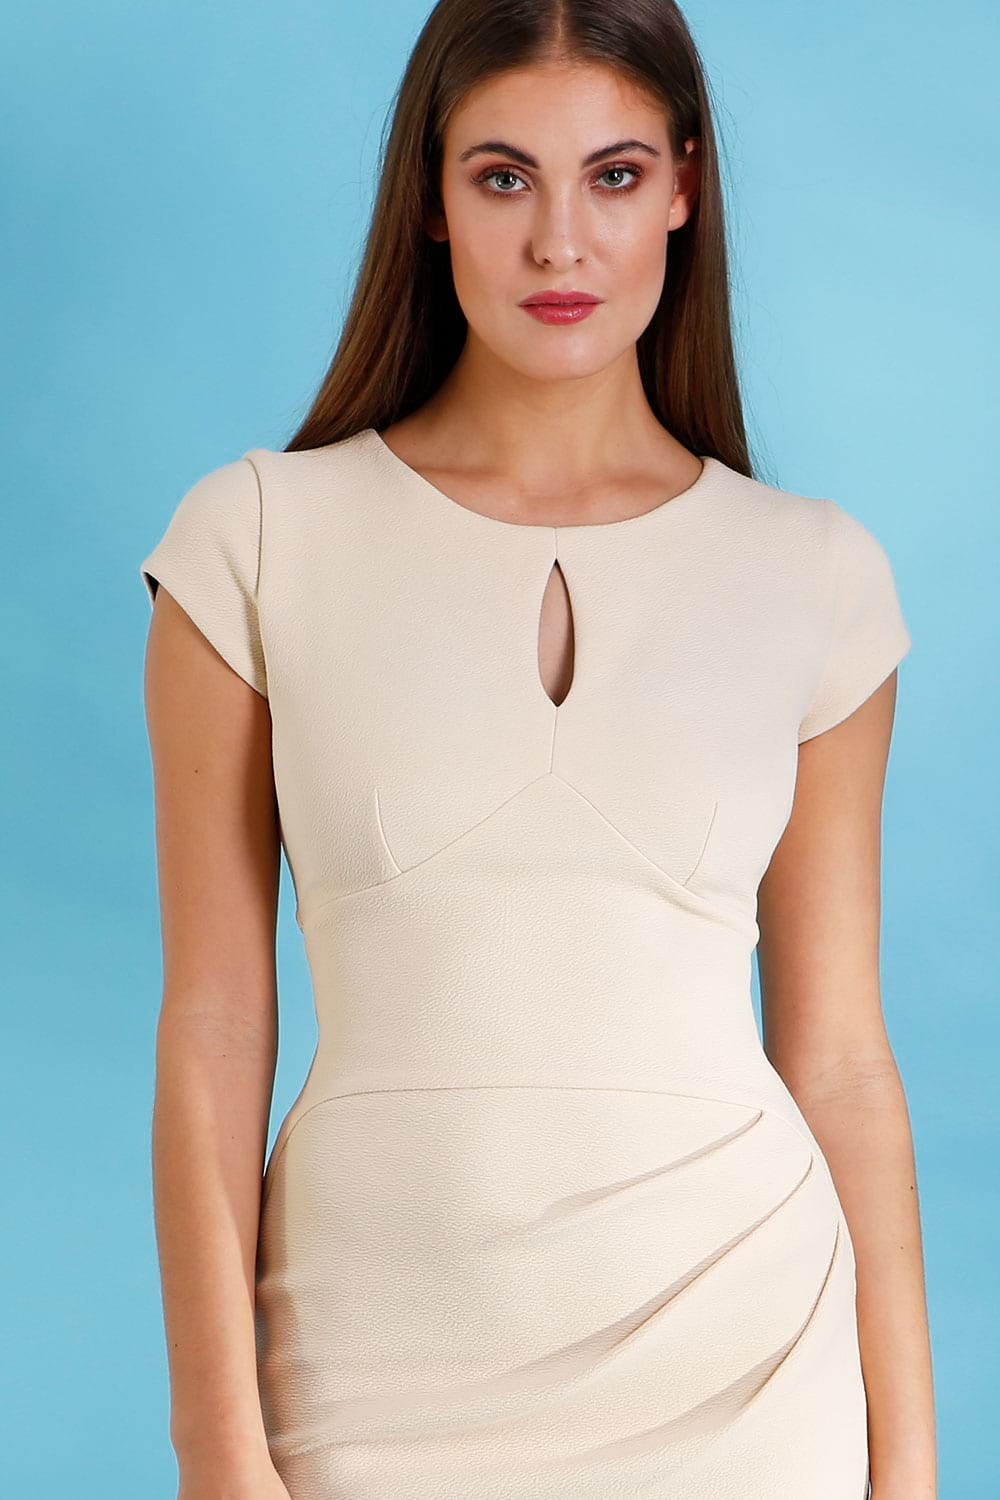 Hybrid Fashion 1277 Coco Keyhole Pencil Dress